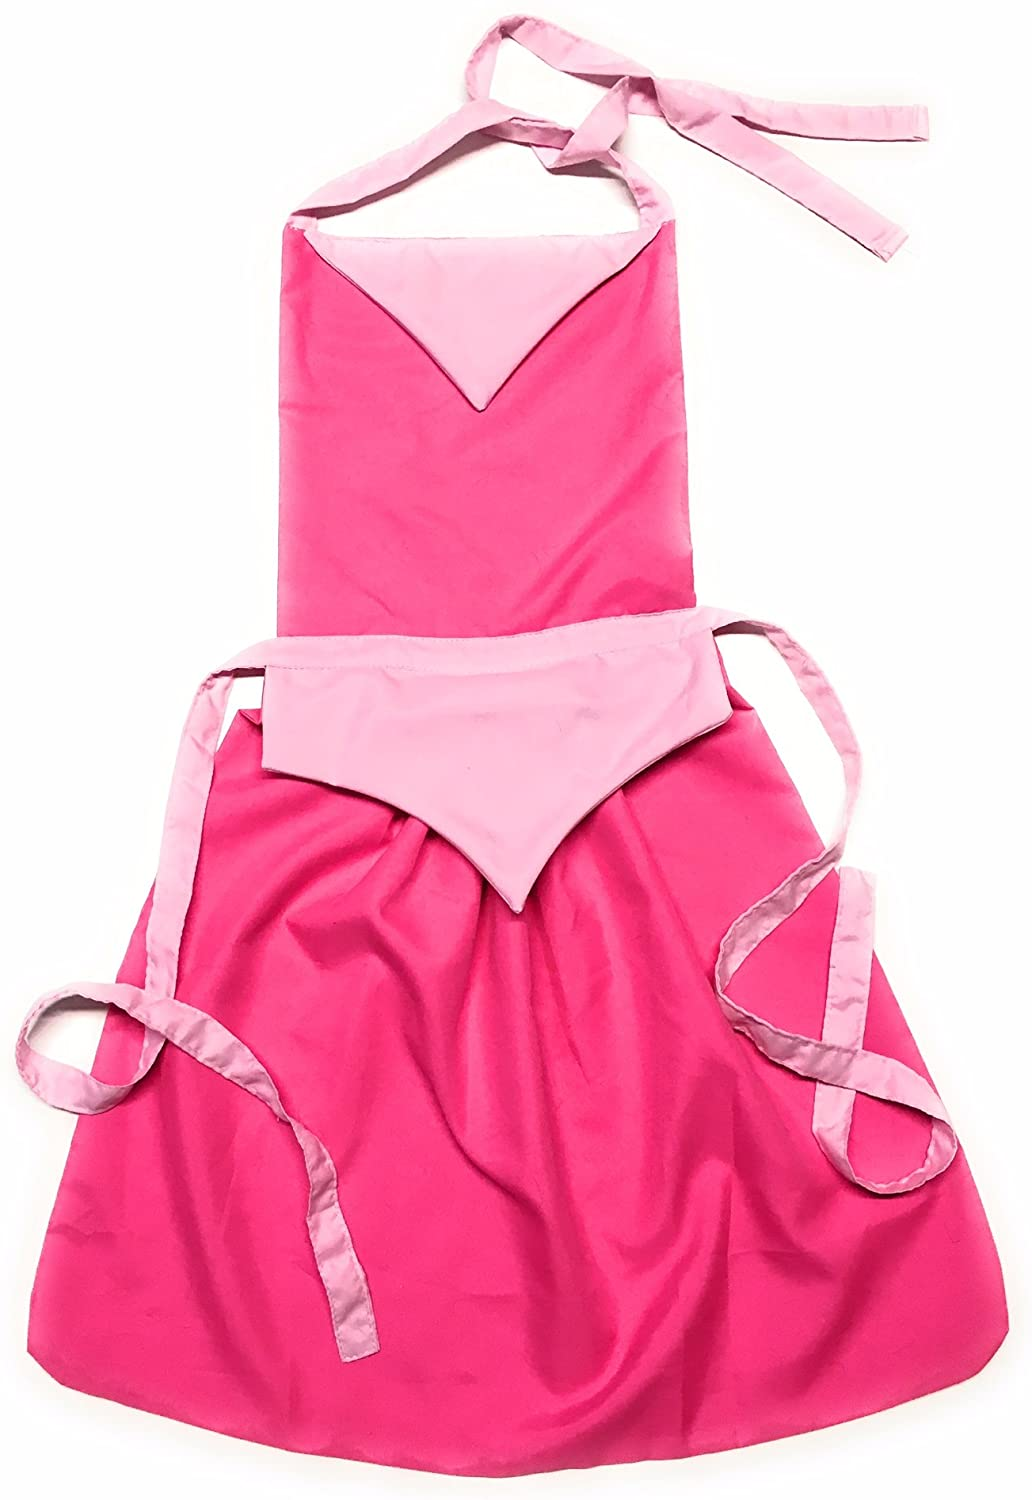 Tiffany Louis Sleeping Beauty Inspired Best Princess Apron Dress Up Clothes for Little Girls Pretend/Baking/Painting